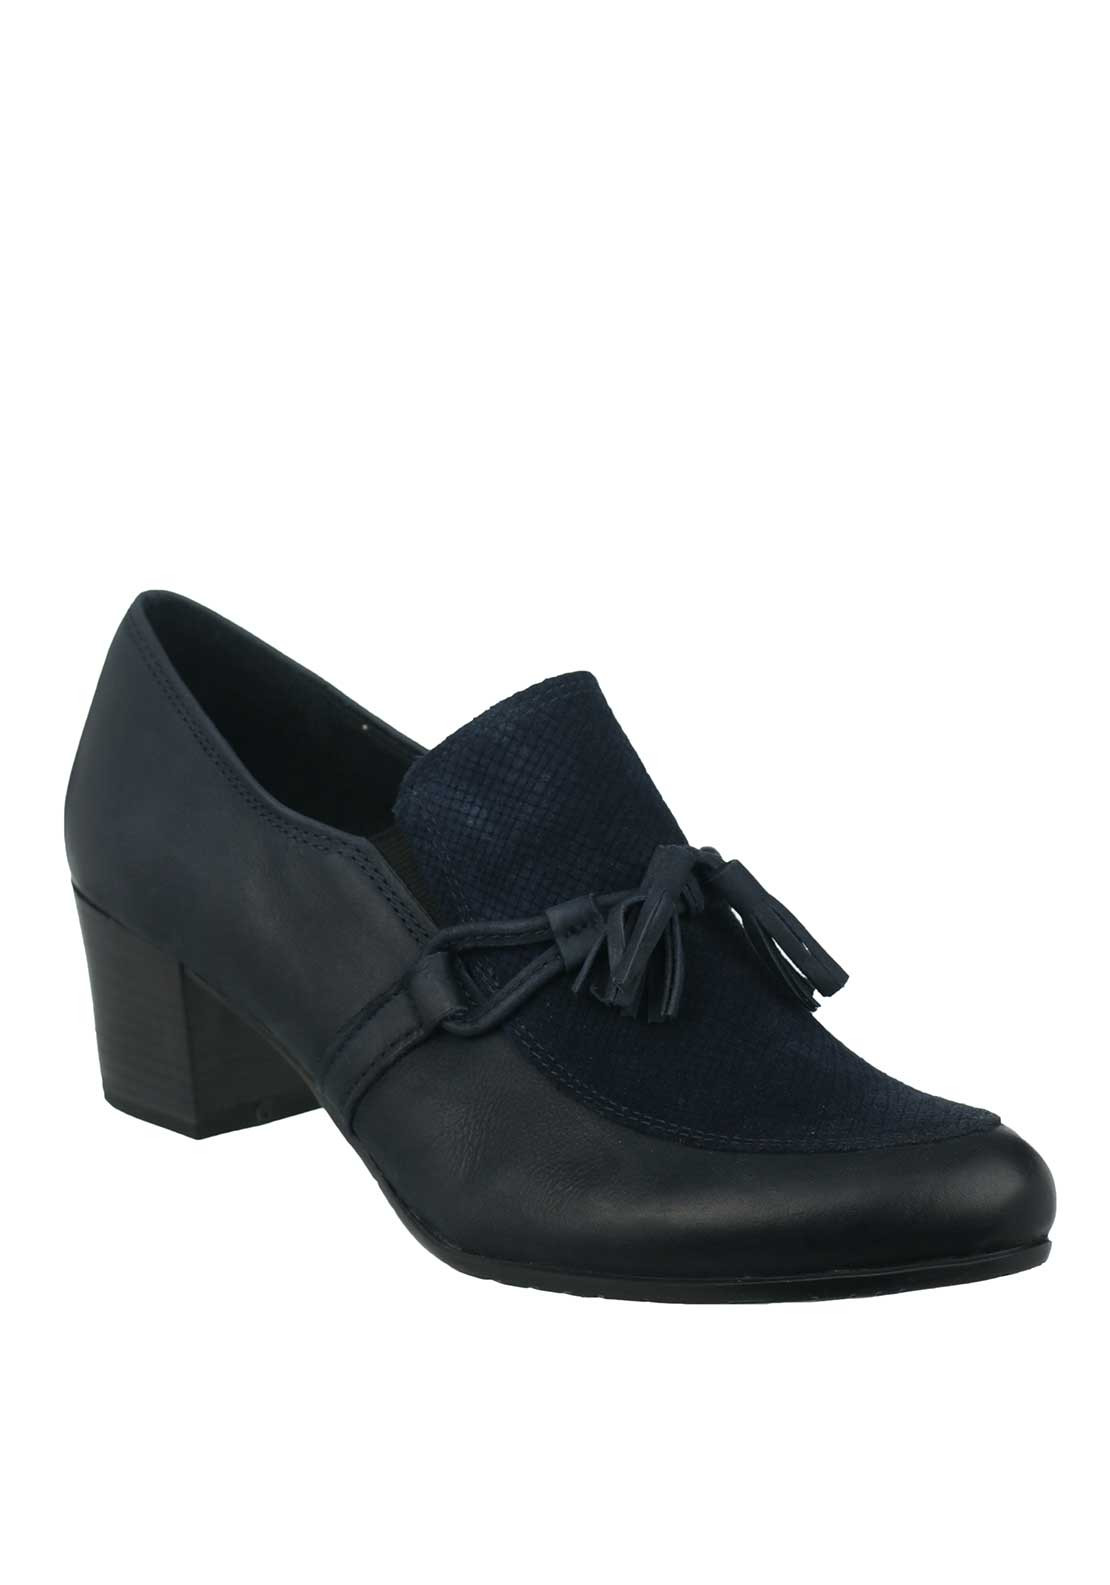 Marco Tozzi Leather Tassel Heeled Slip on Loafer Shoes, Navy